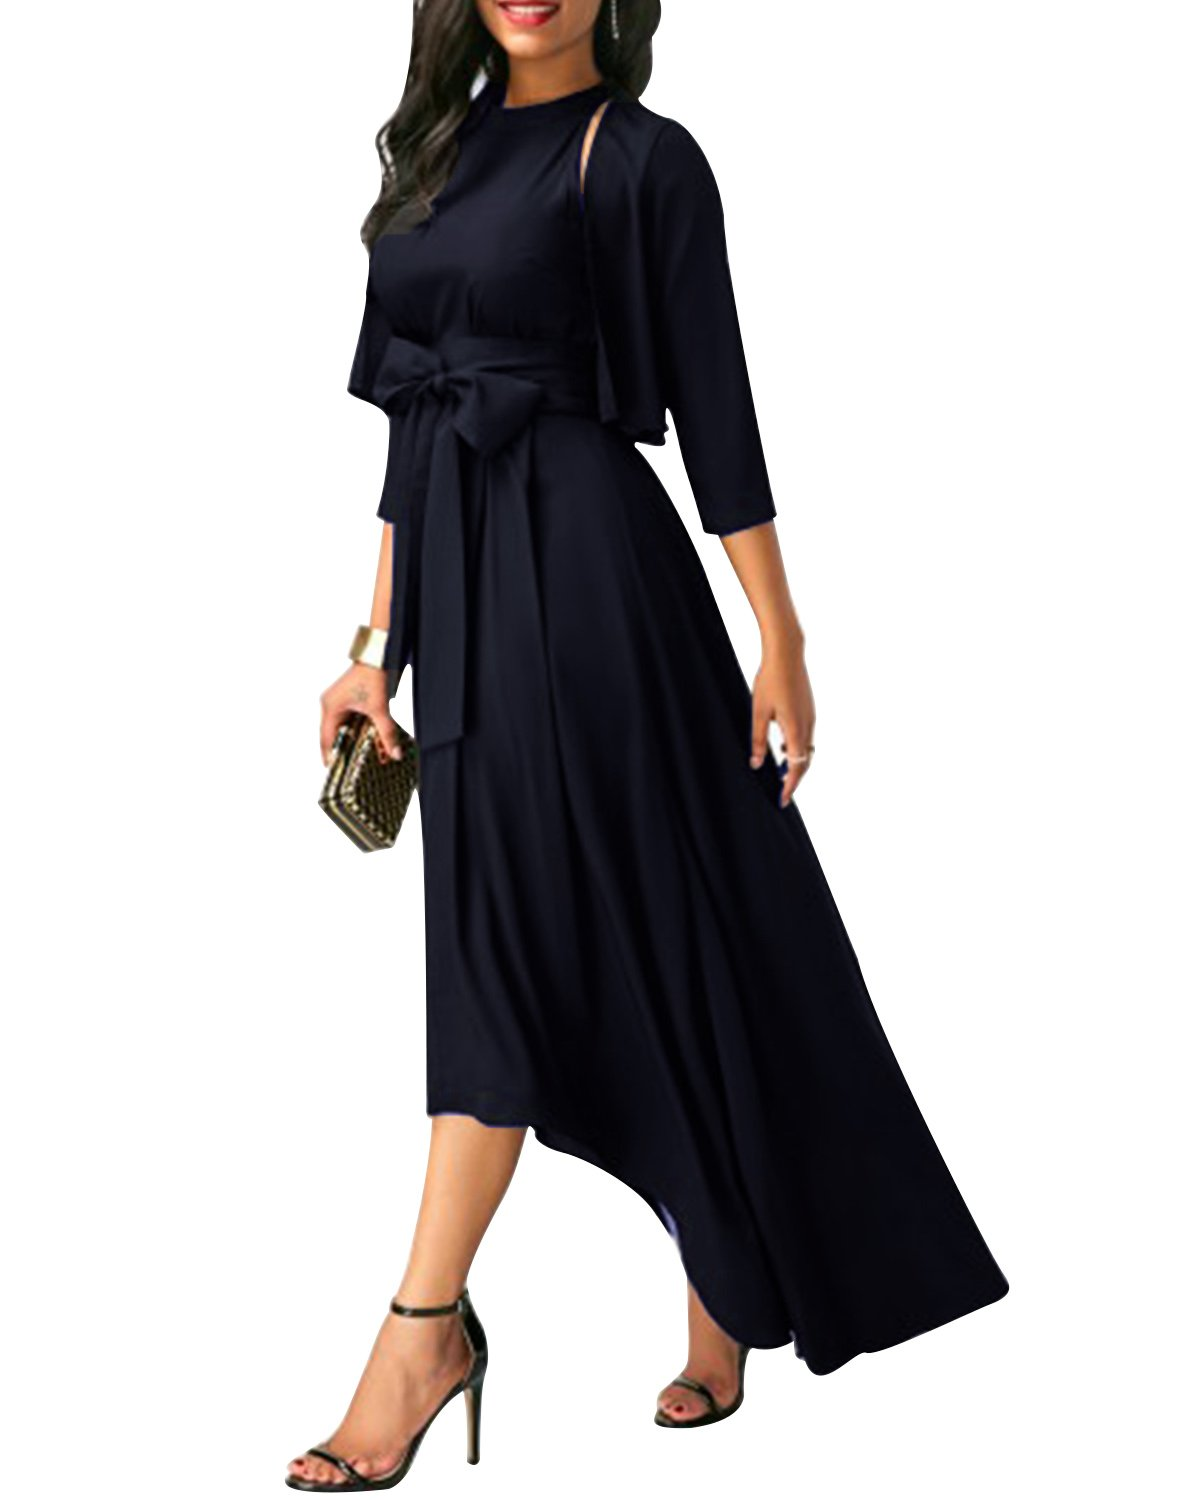 VIUVIU Coctail Dress for Women Elegant,Summer Sexy Fitted Swing Dress for Party Evening Black L